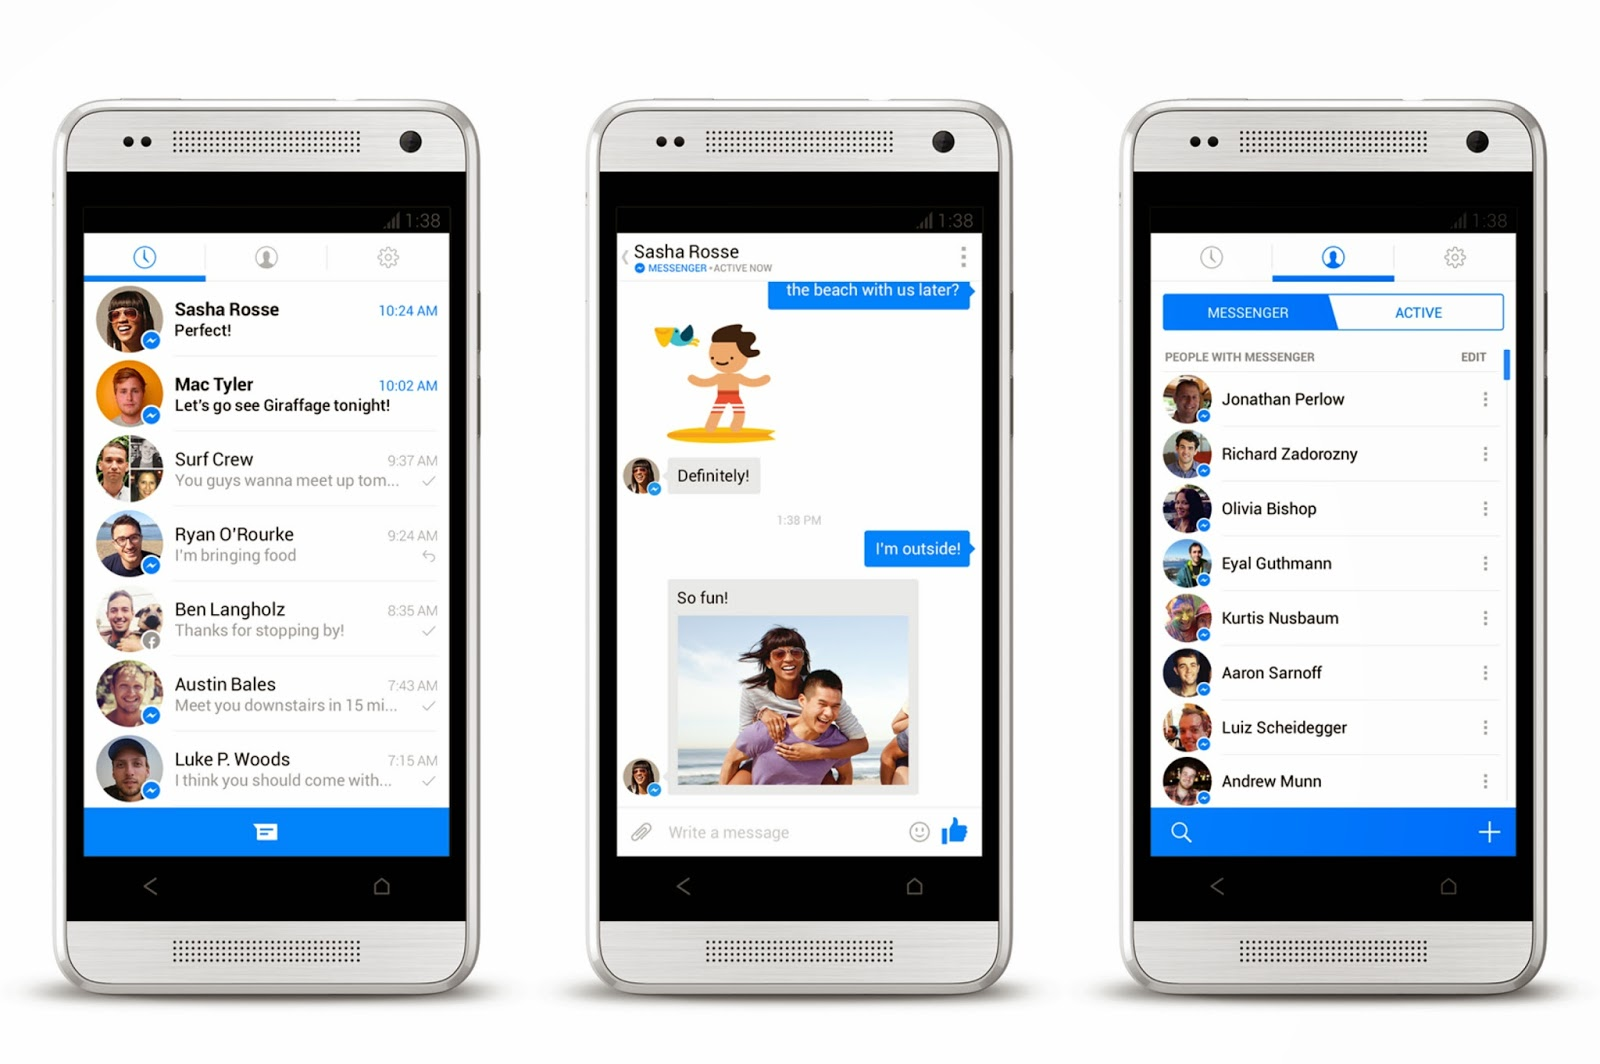 Facebook Messenger 79.0.0.3.70 beta (arm) (nodpi) (Android 4.0.3+) Apk Cracked Latest